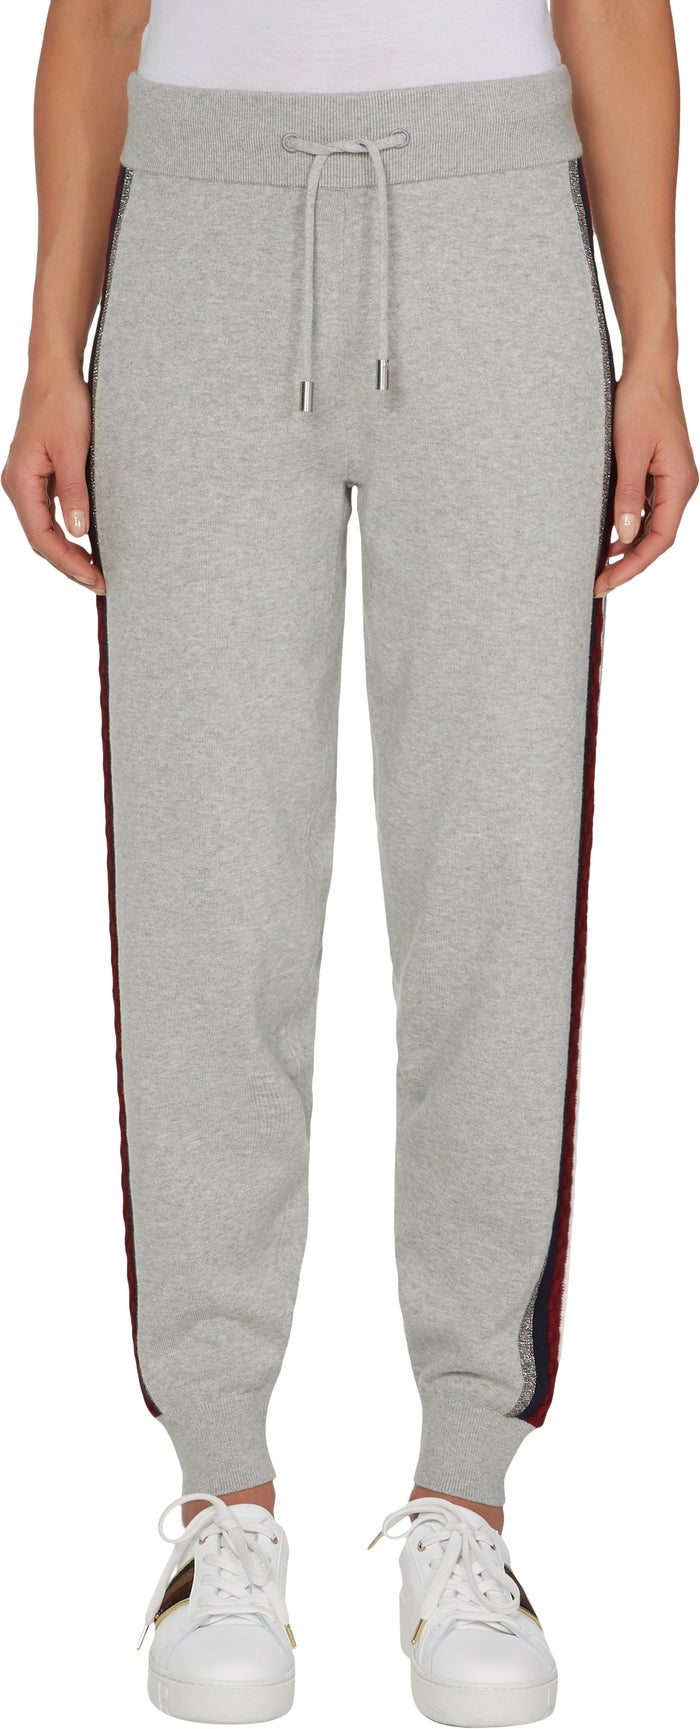 db534fa952cc97 Tommy Hilfiger Icon Tarah Women's Jogging Pants - Light Grey Heather ...